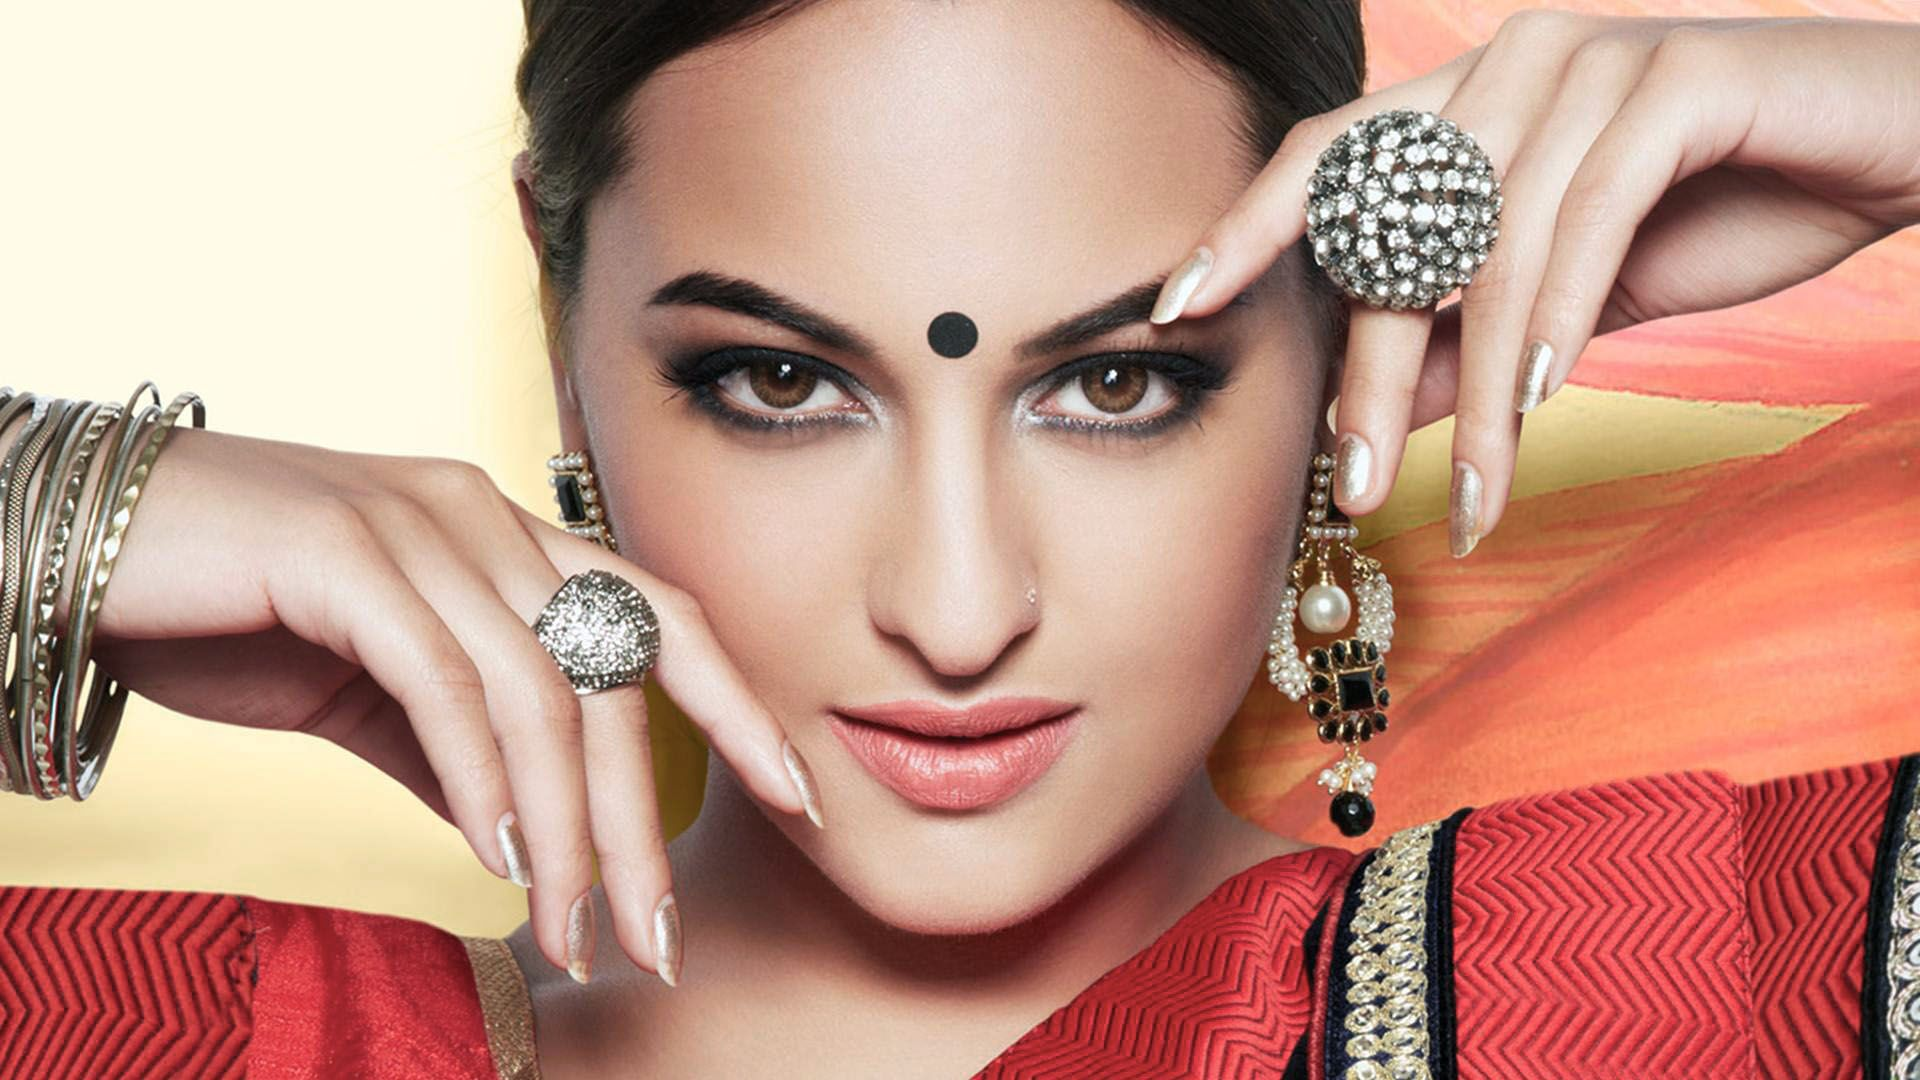 Sonakshi Sinha Beautiful Indian Celebrity Wallpaper